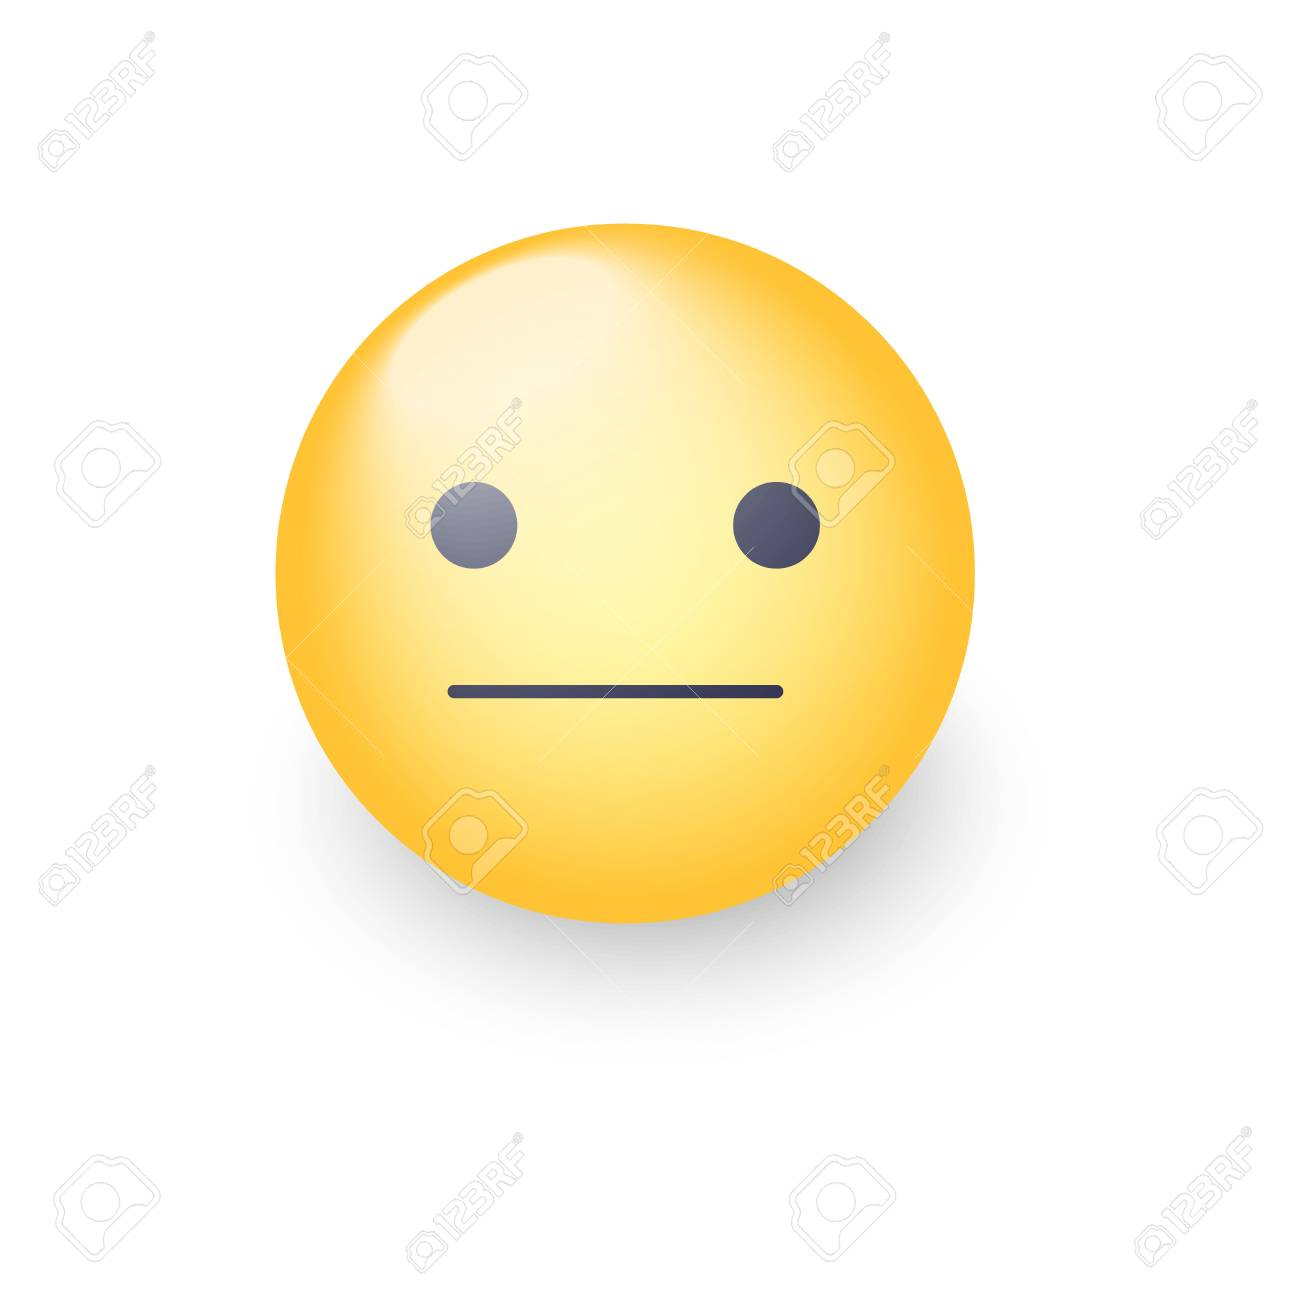 Indifferent emoji cartoon icon. Expressionless emoticon face. Neutral smiley mood - 87214296